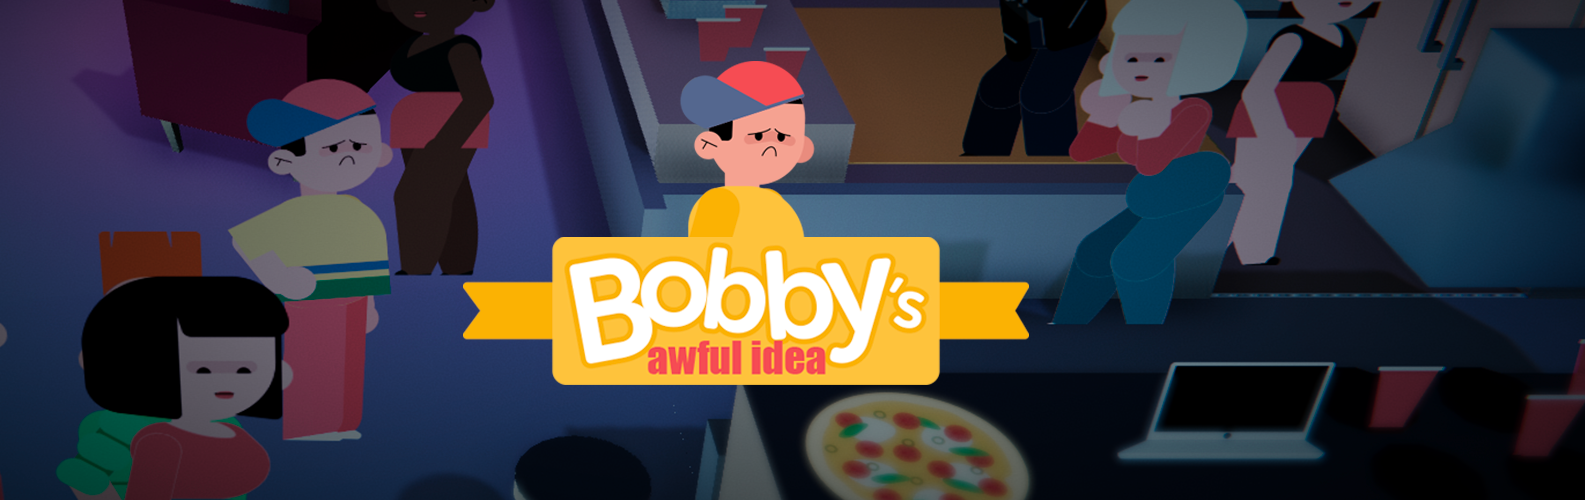 Bobby's awful idea